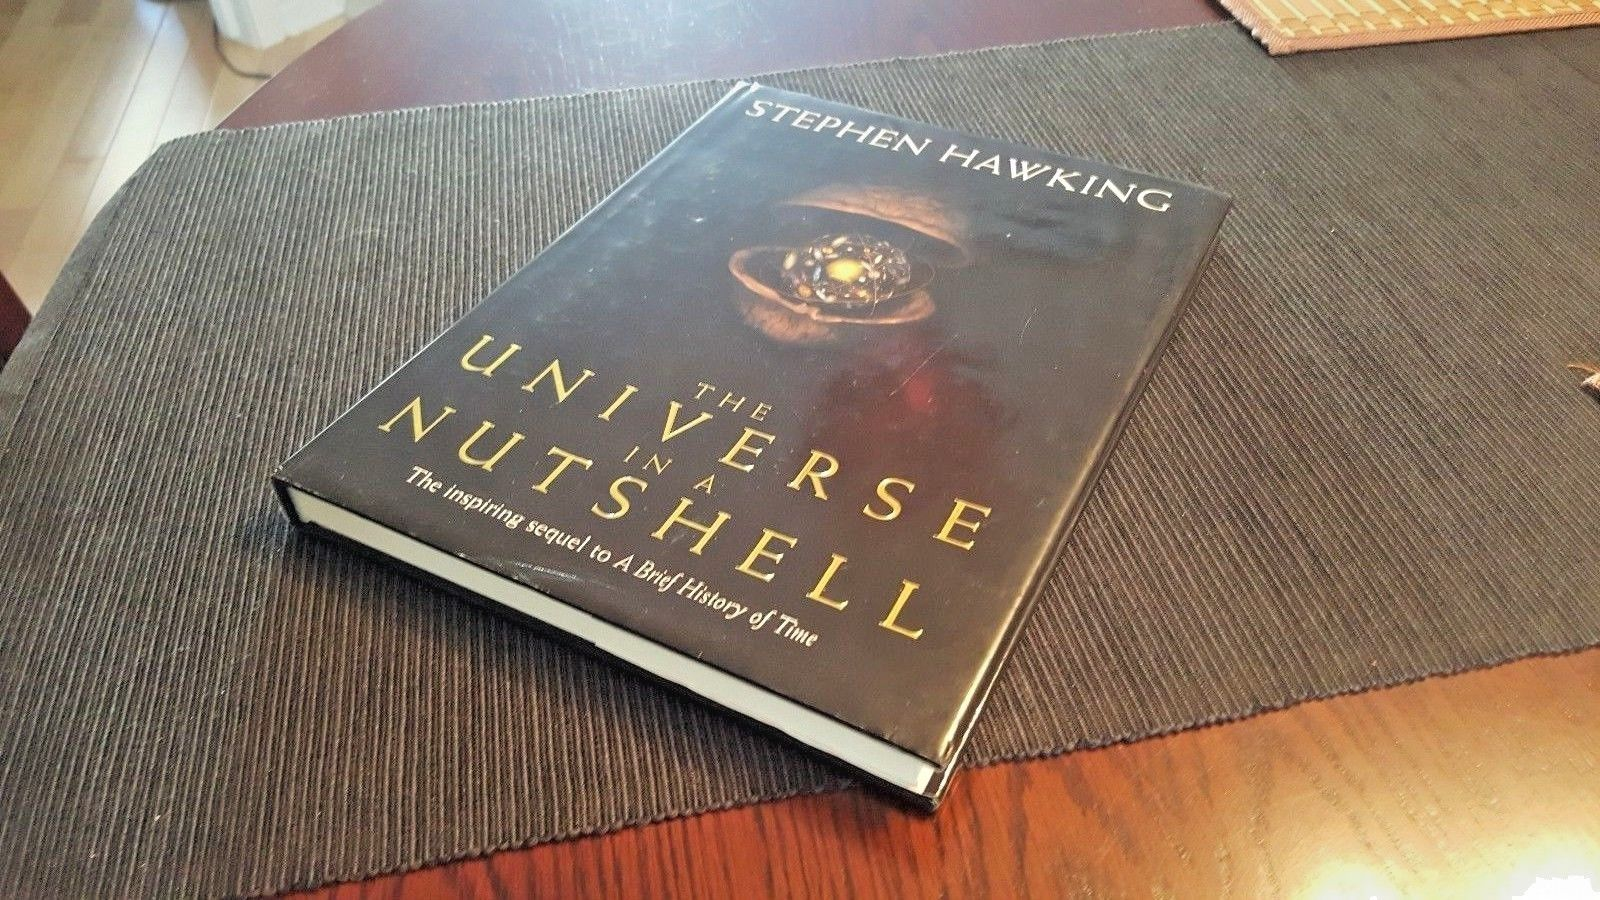 Stephen Hawking Thumb Print Book Autograph Signature 1st Edition Universe in a Nutshell